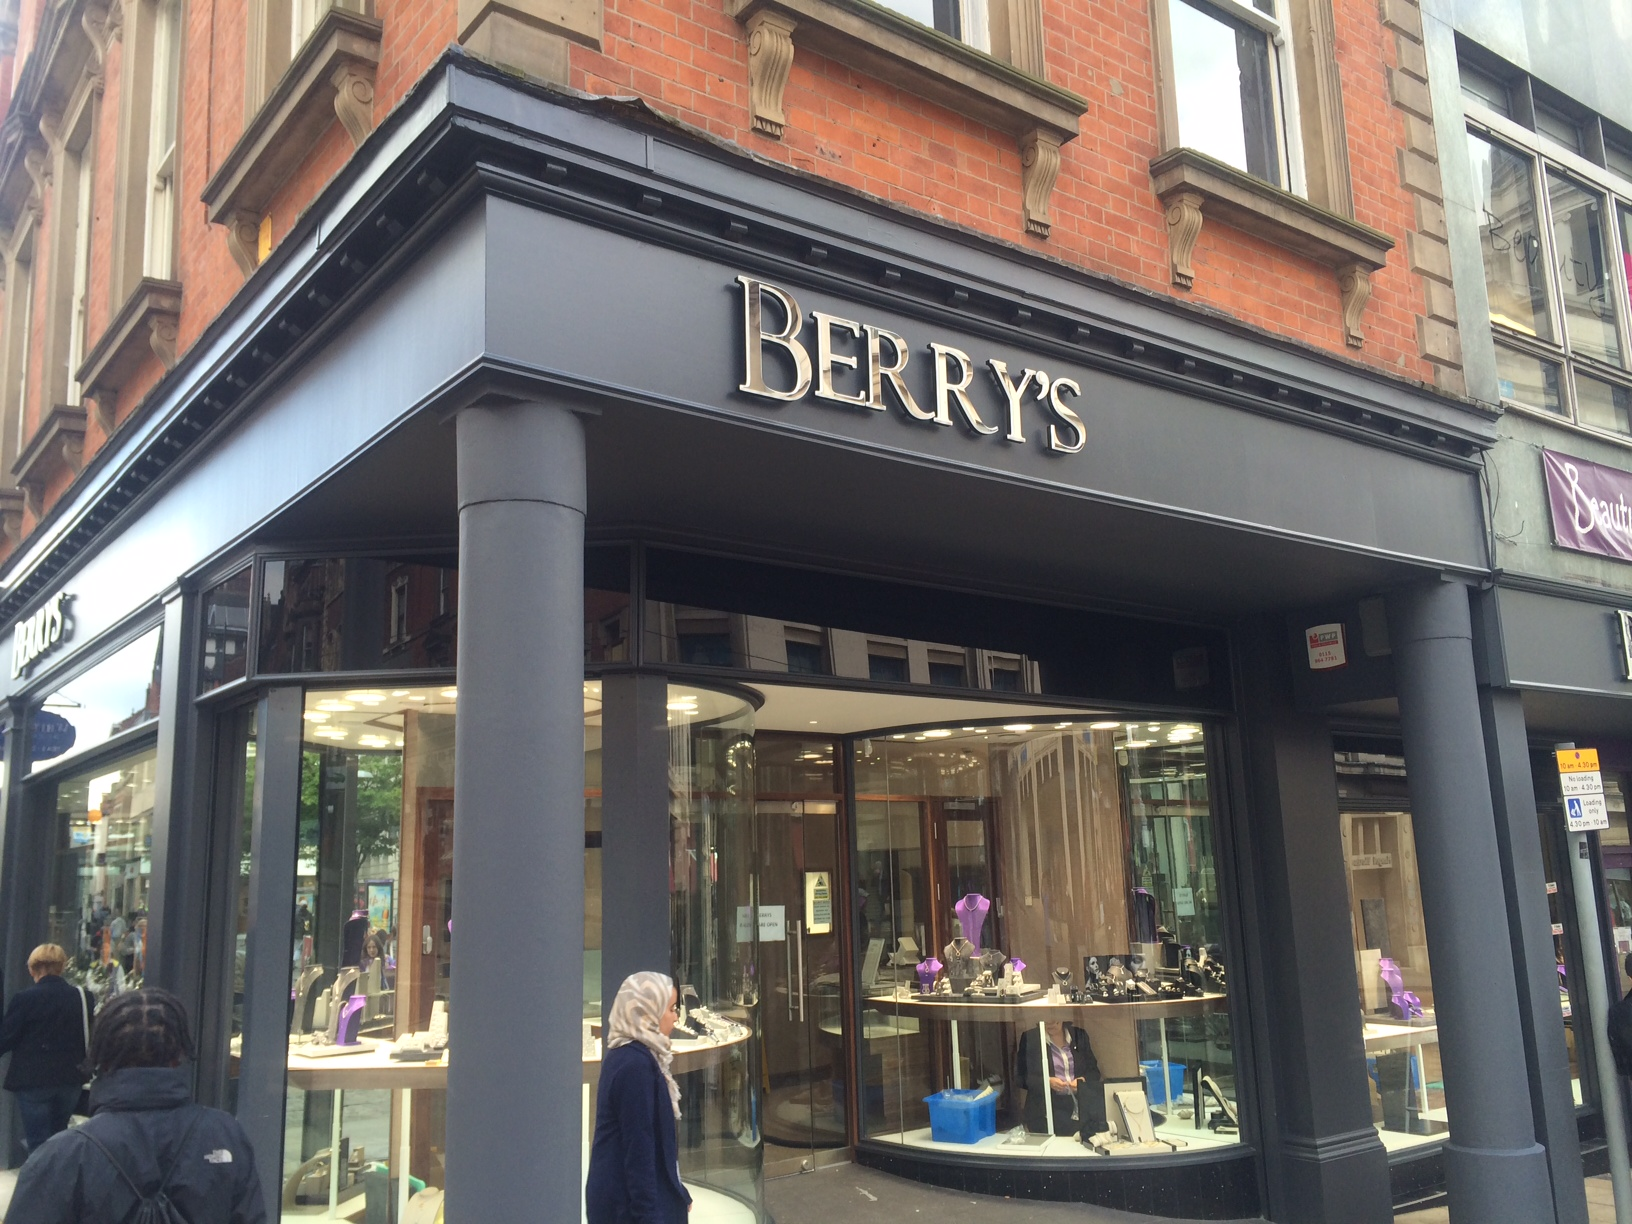 The Berry's portfolio of stores includes Leeds, York, Nottingham (pictured) and Windsor.